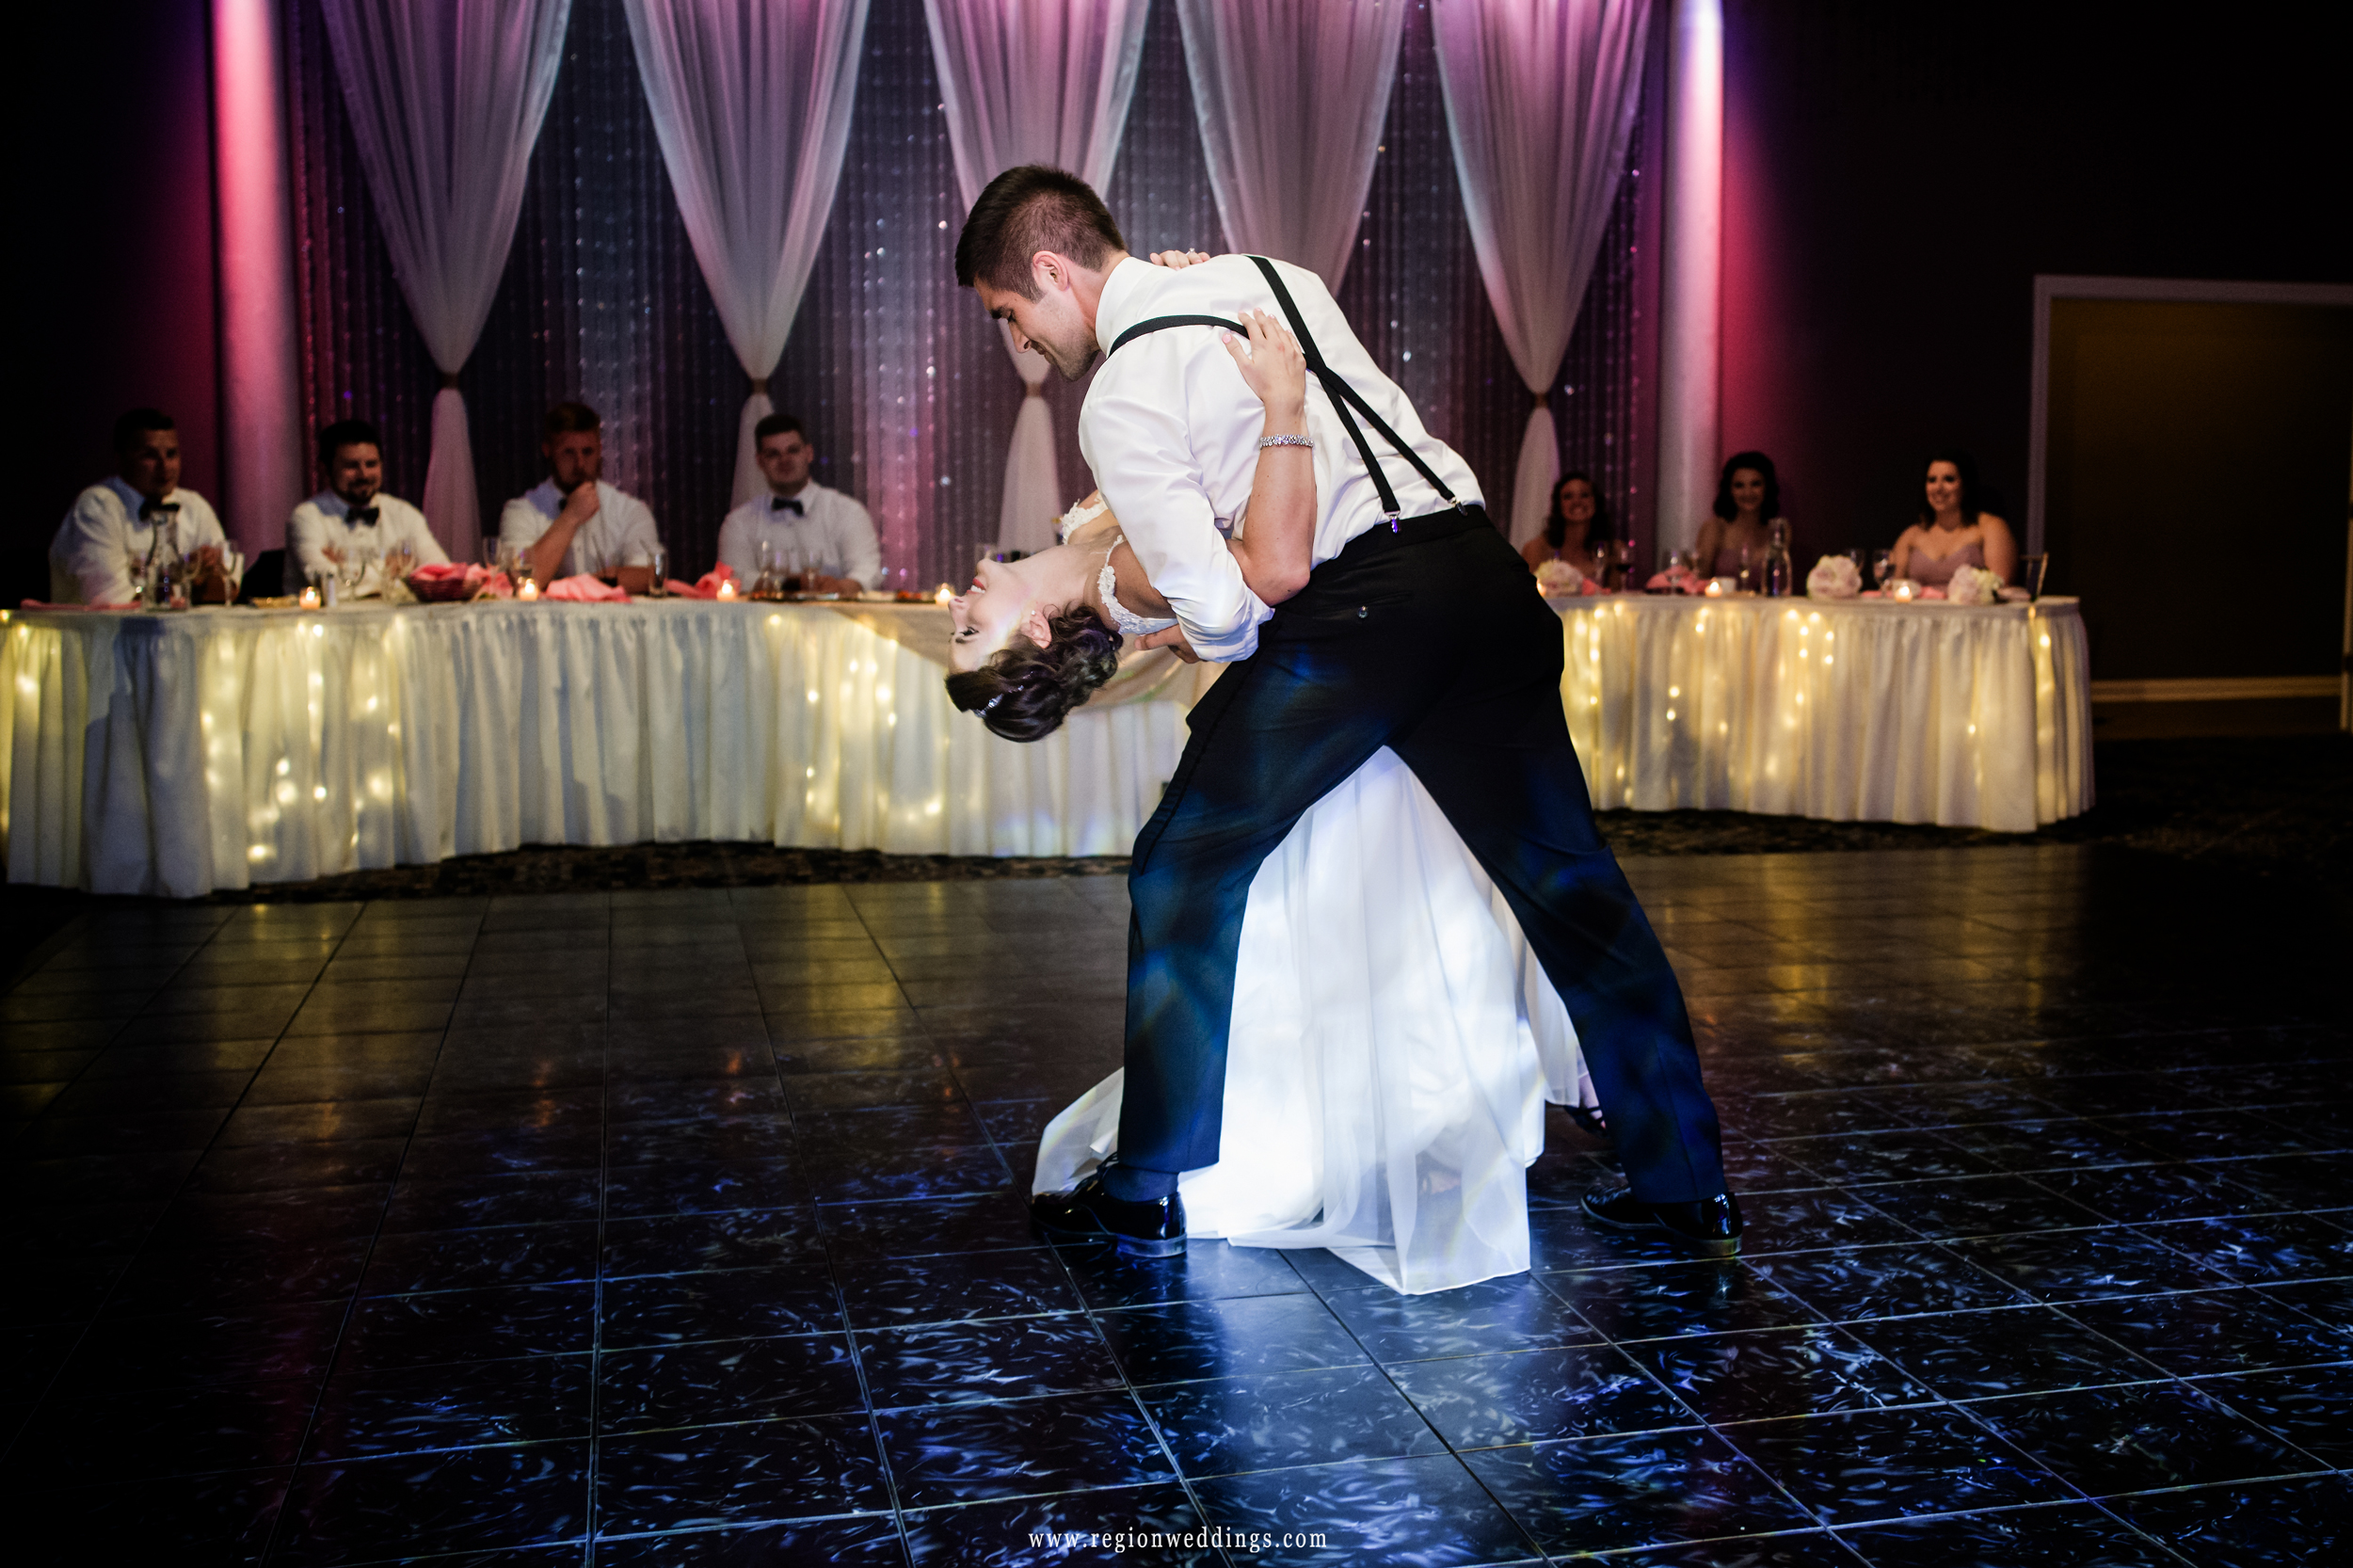 The groom dips his bride at Aberdeen Manor in Valparaiso, Indiana.